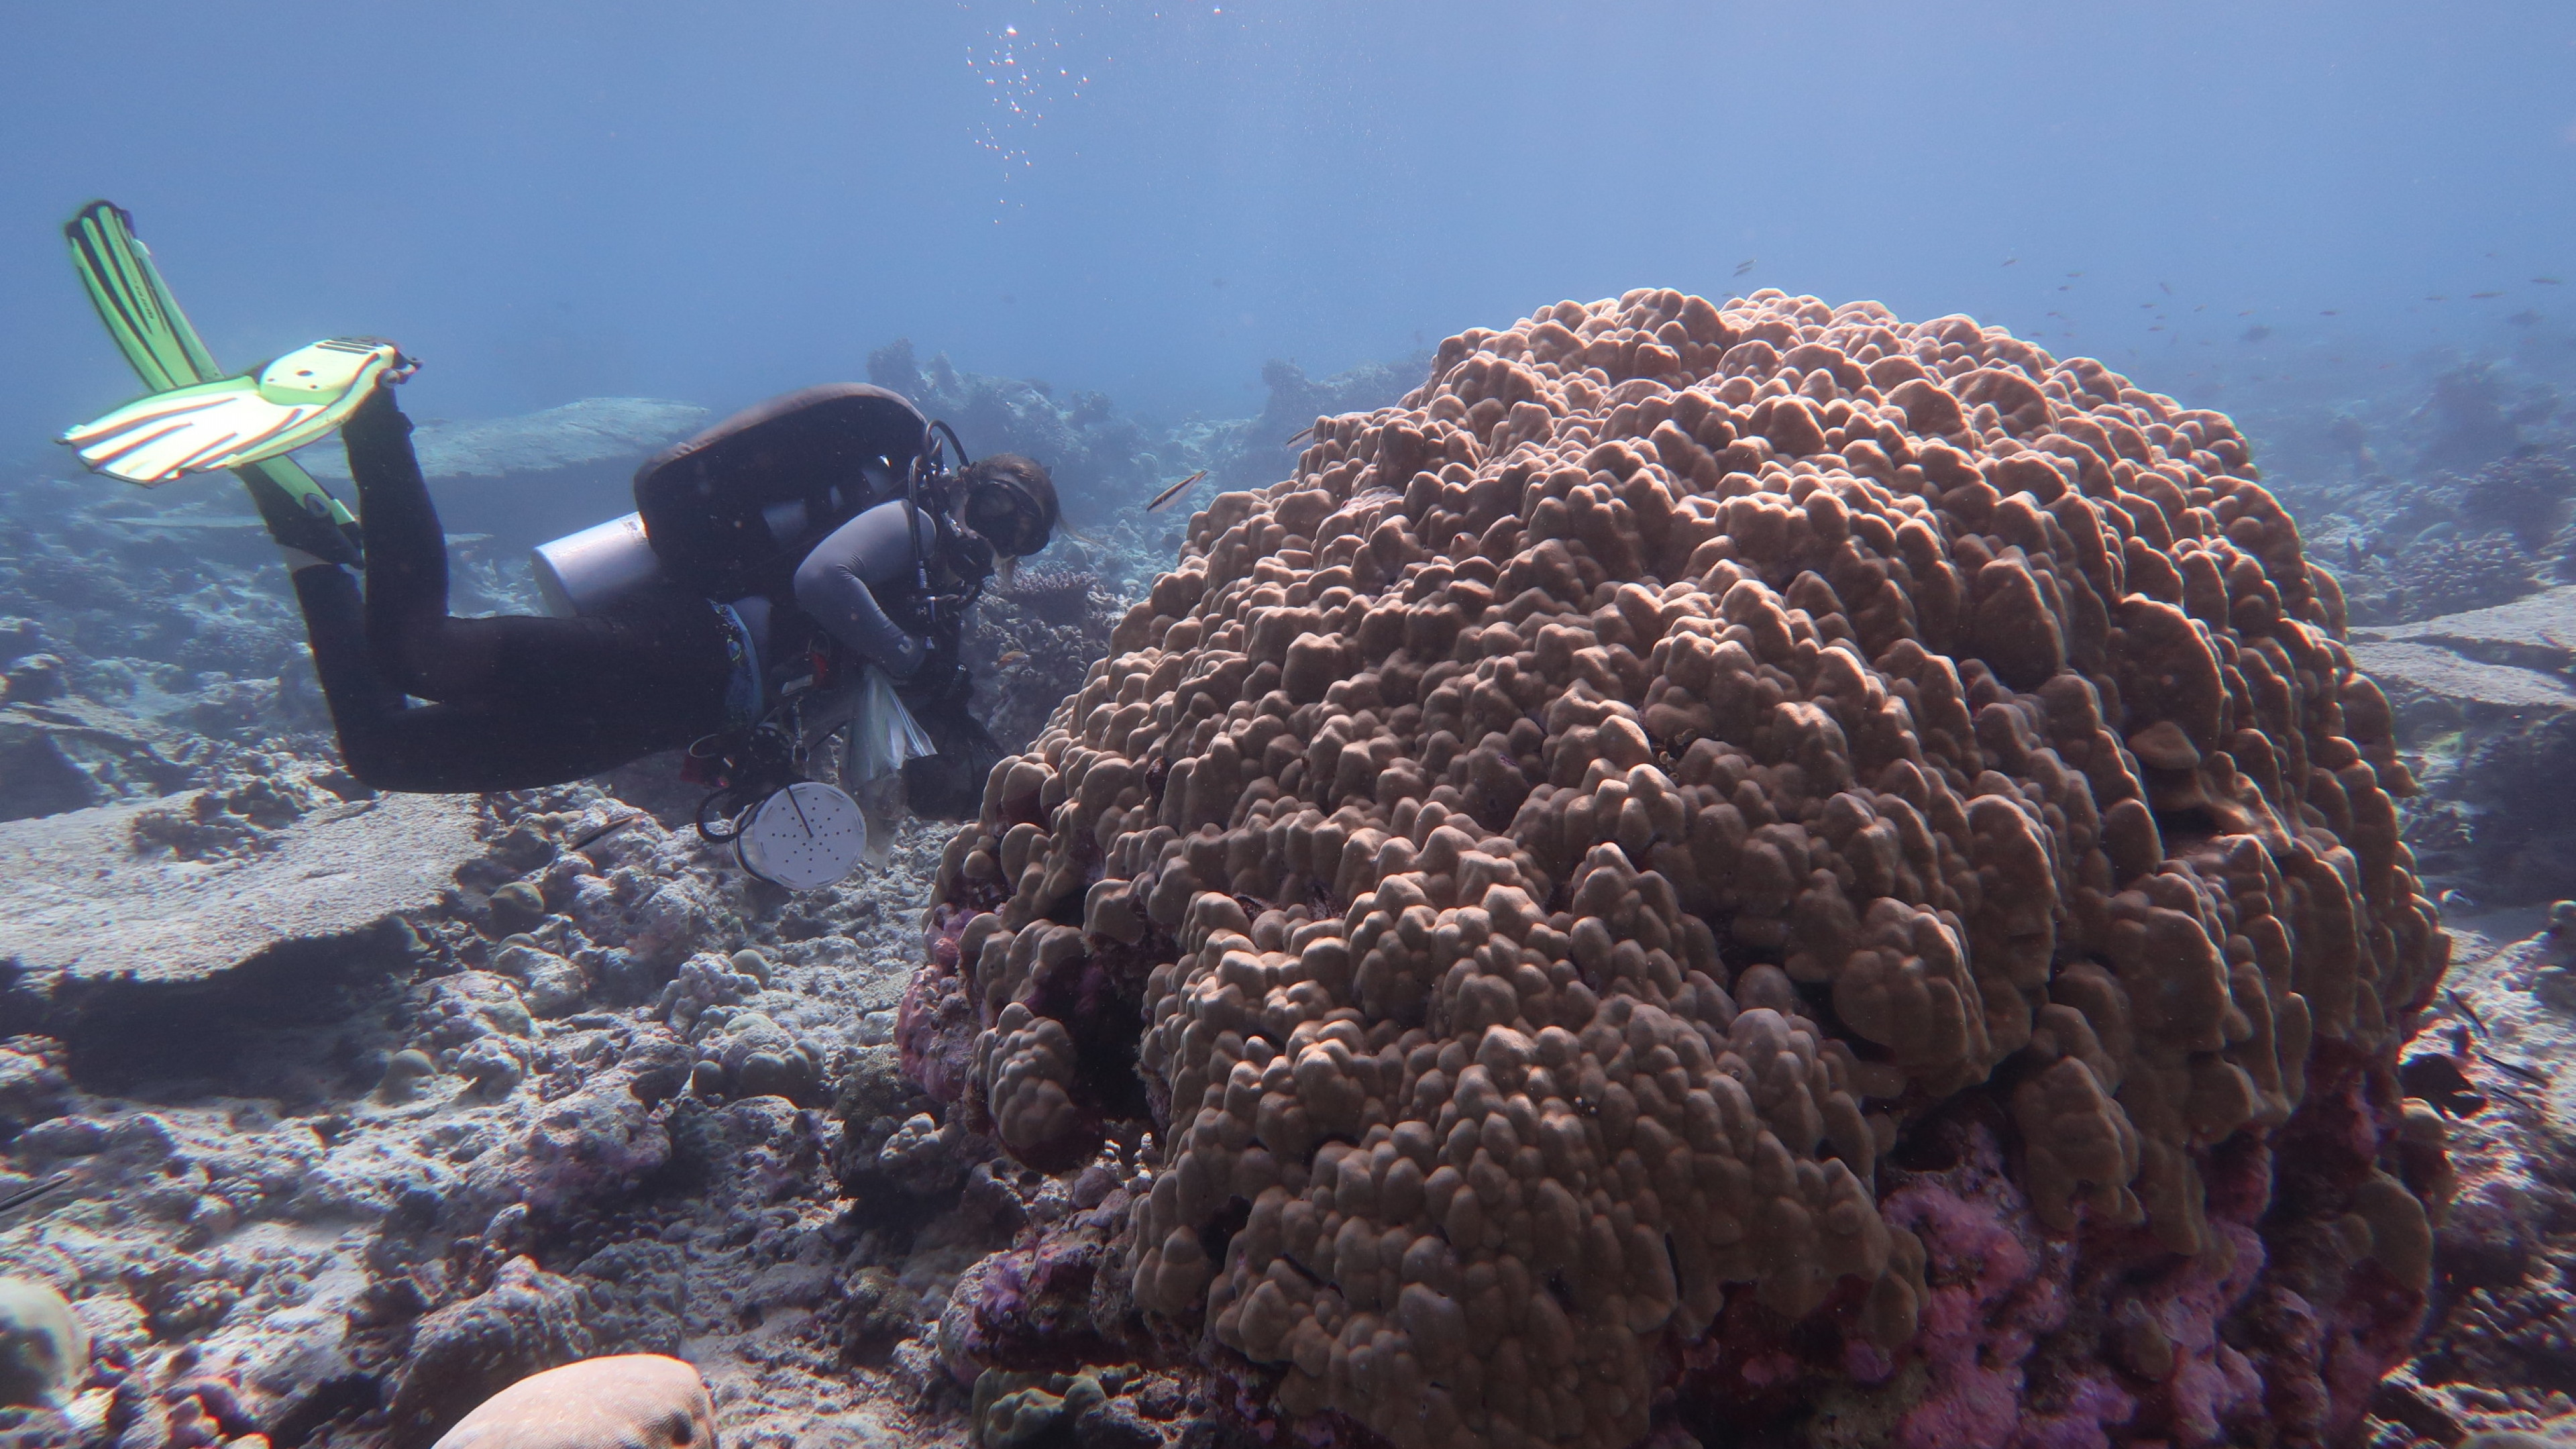 Underwater, a person in scuba gear examines large, round coral